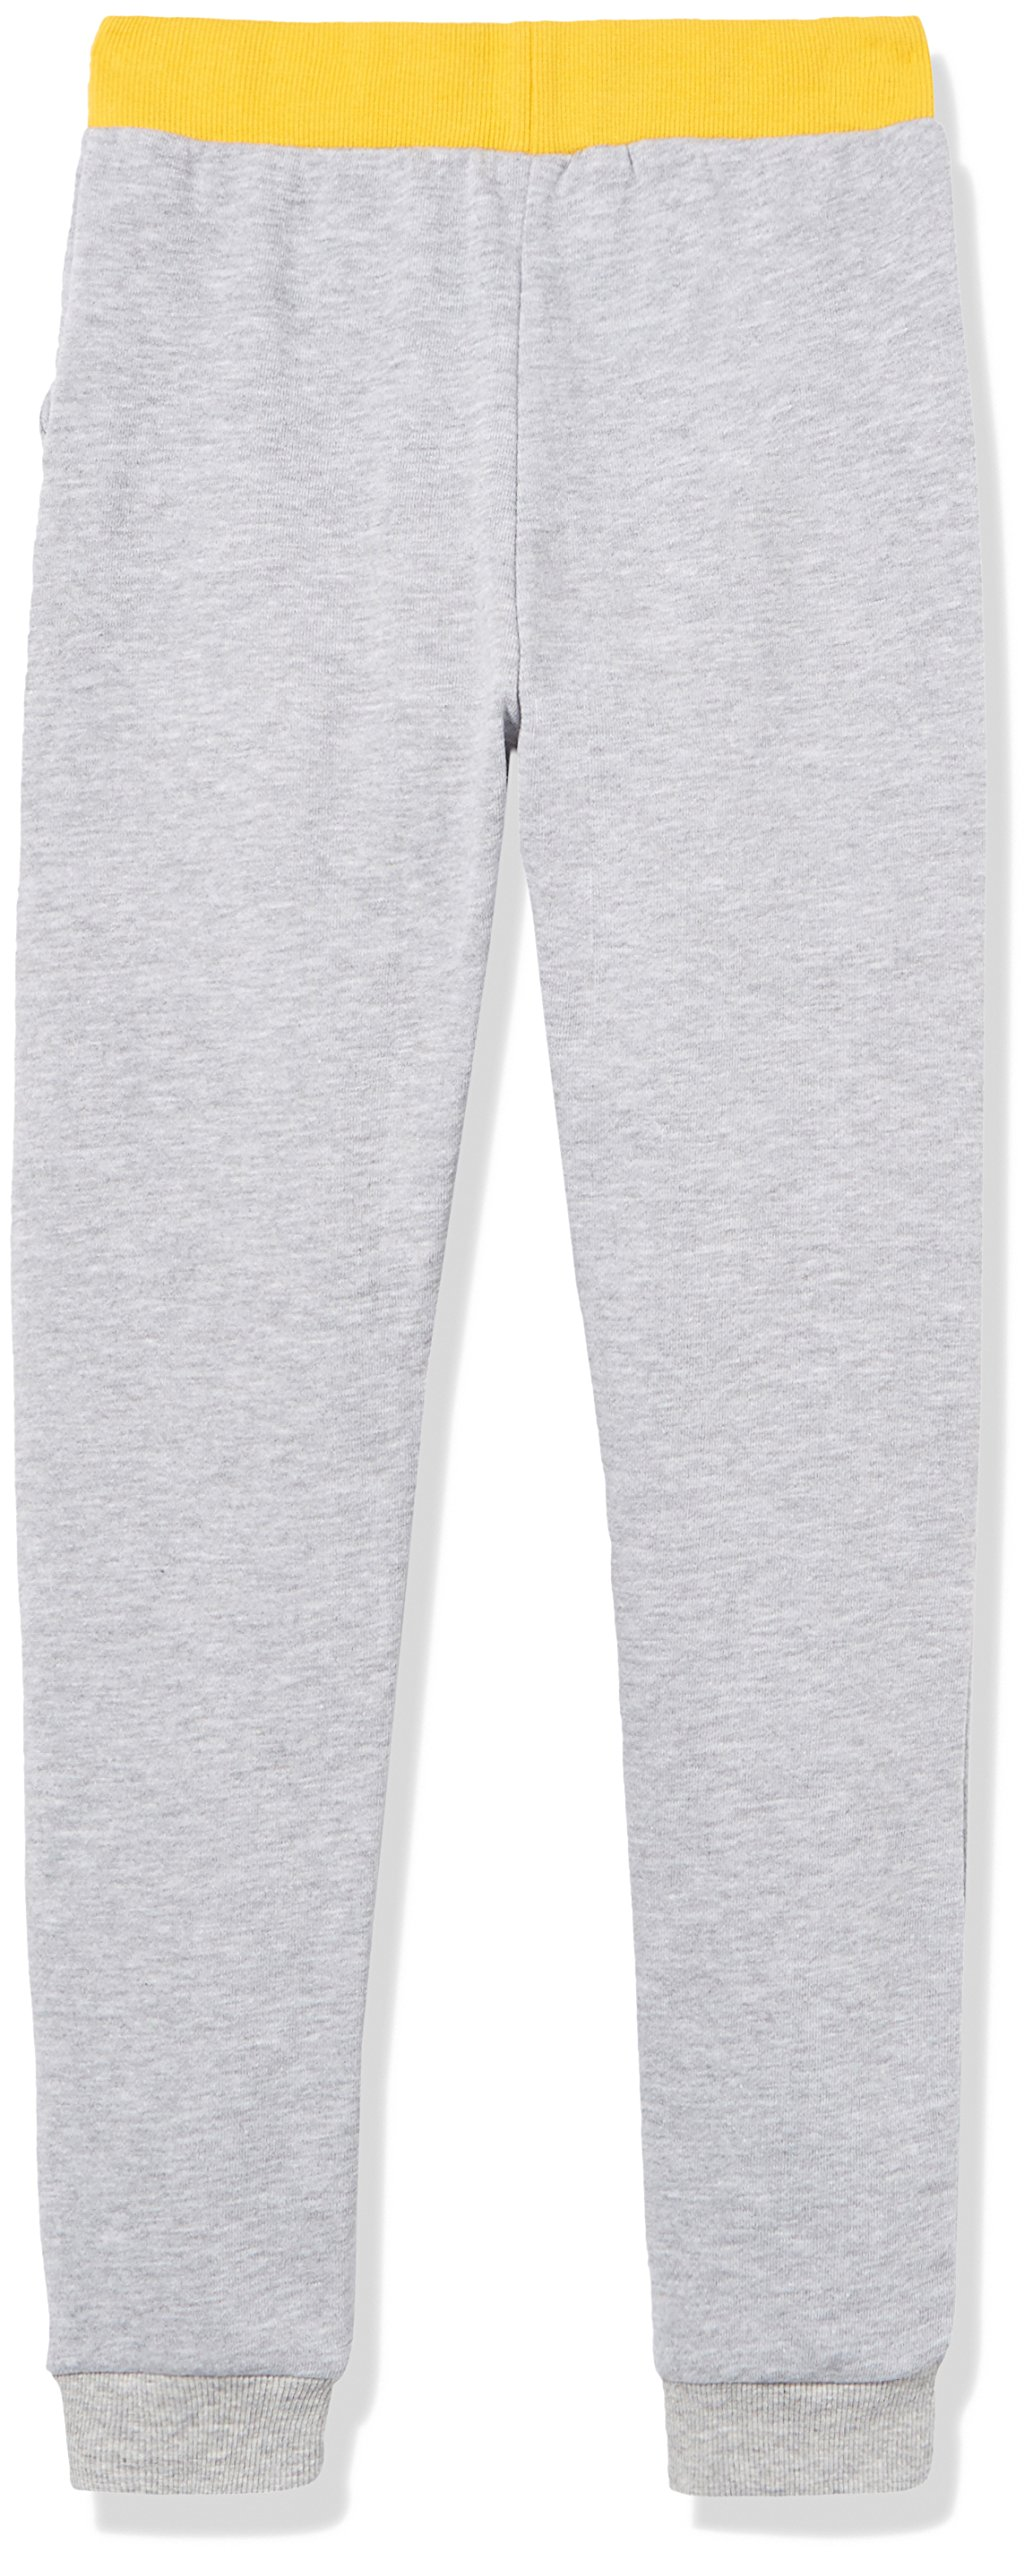 Kid Nation Kids' French Terry Jogger for Boys Or Girls XL Gray by Kid Nation (Image #2)